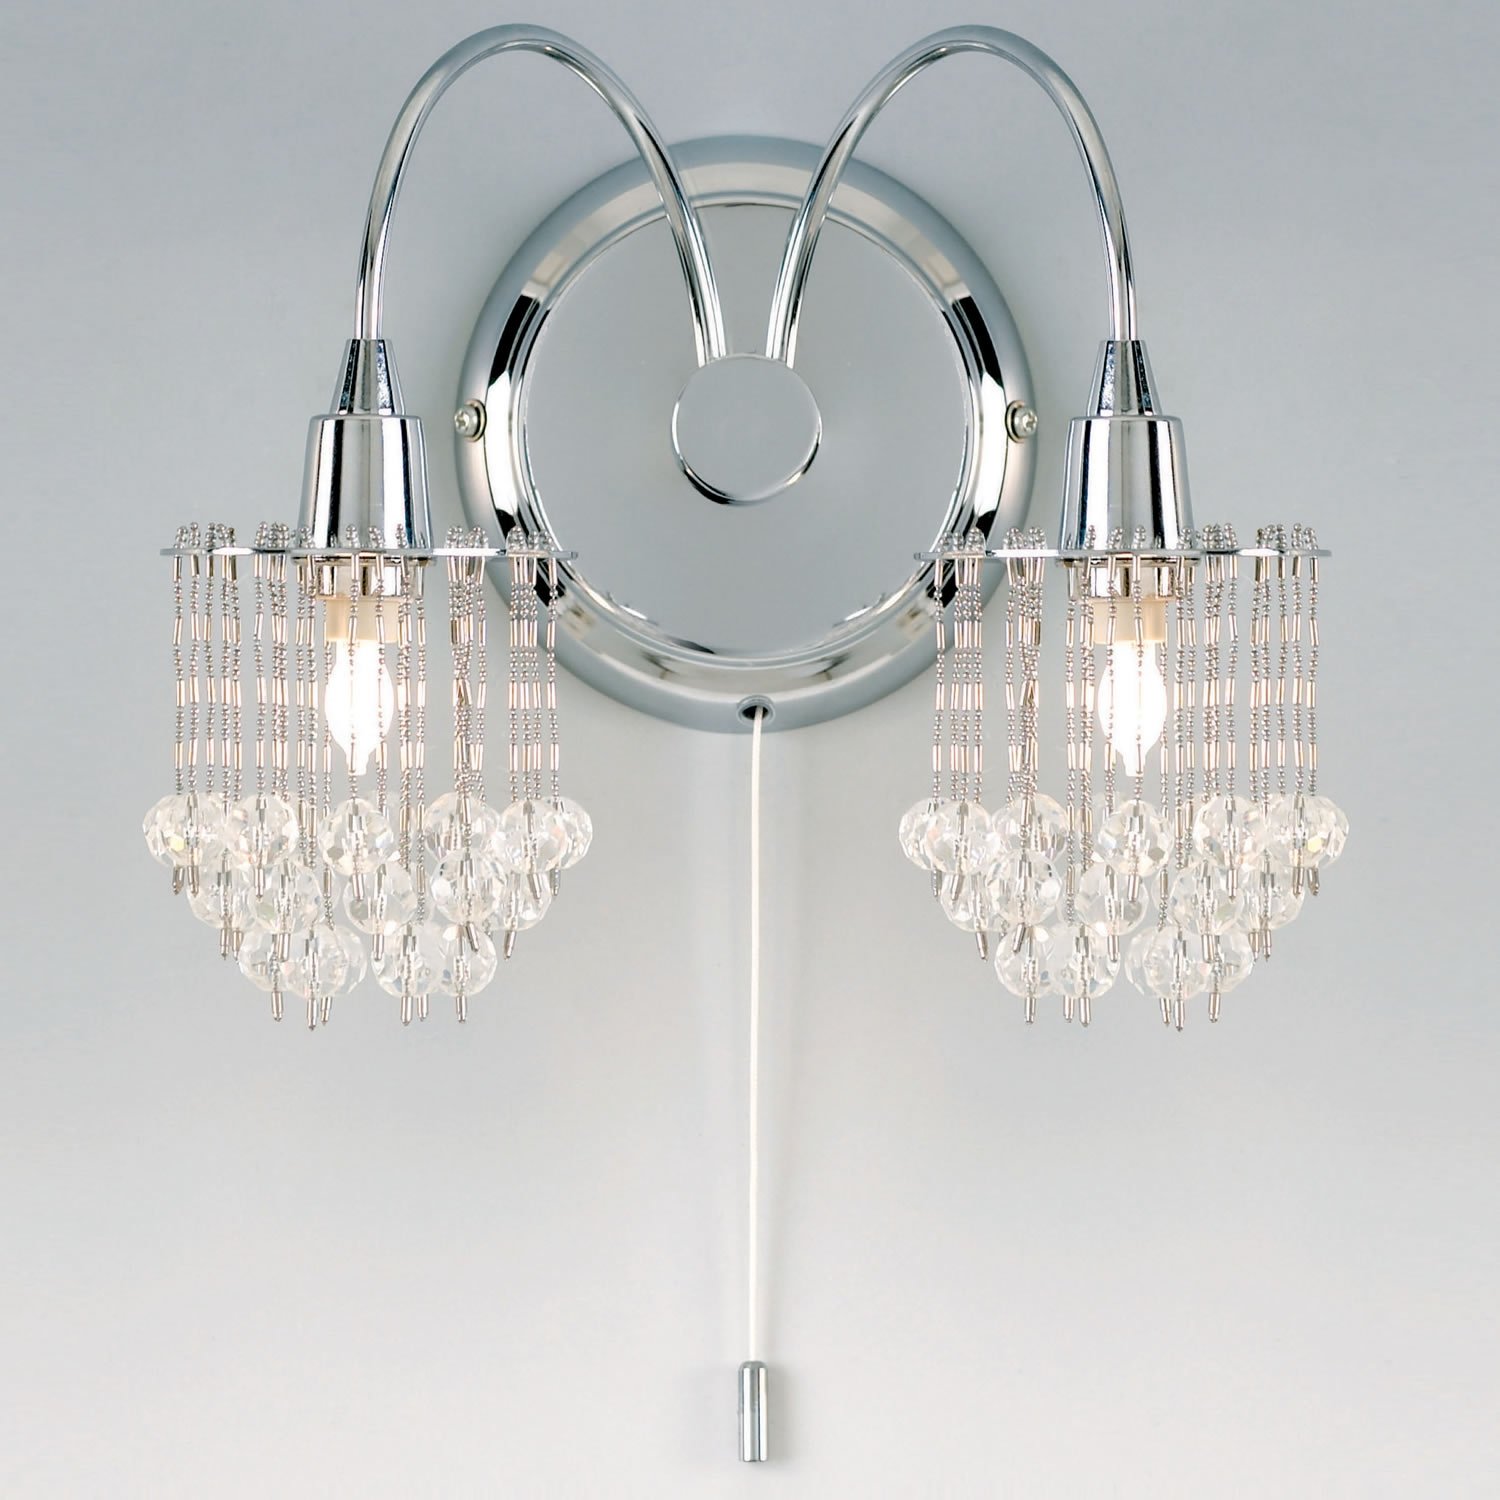 Endon Lighting 2 Light Wall Light In Crystal 850 2 Next Day Next Pertaining To Endon Lighting Chandeliers (Image 11 of 25)